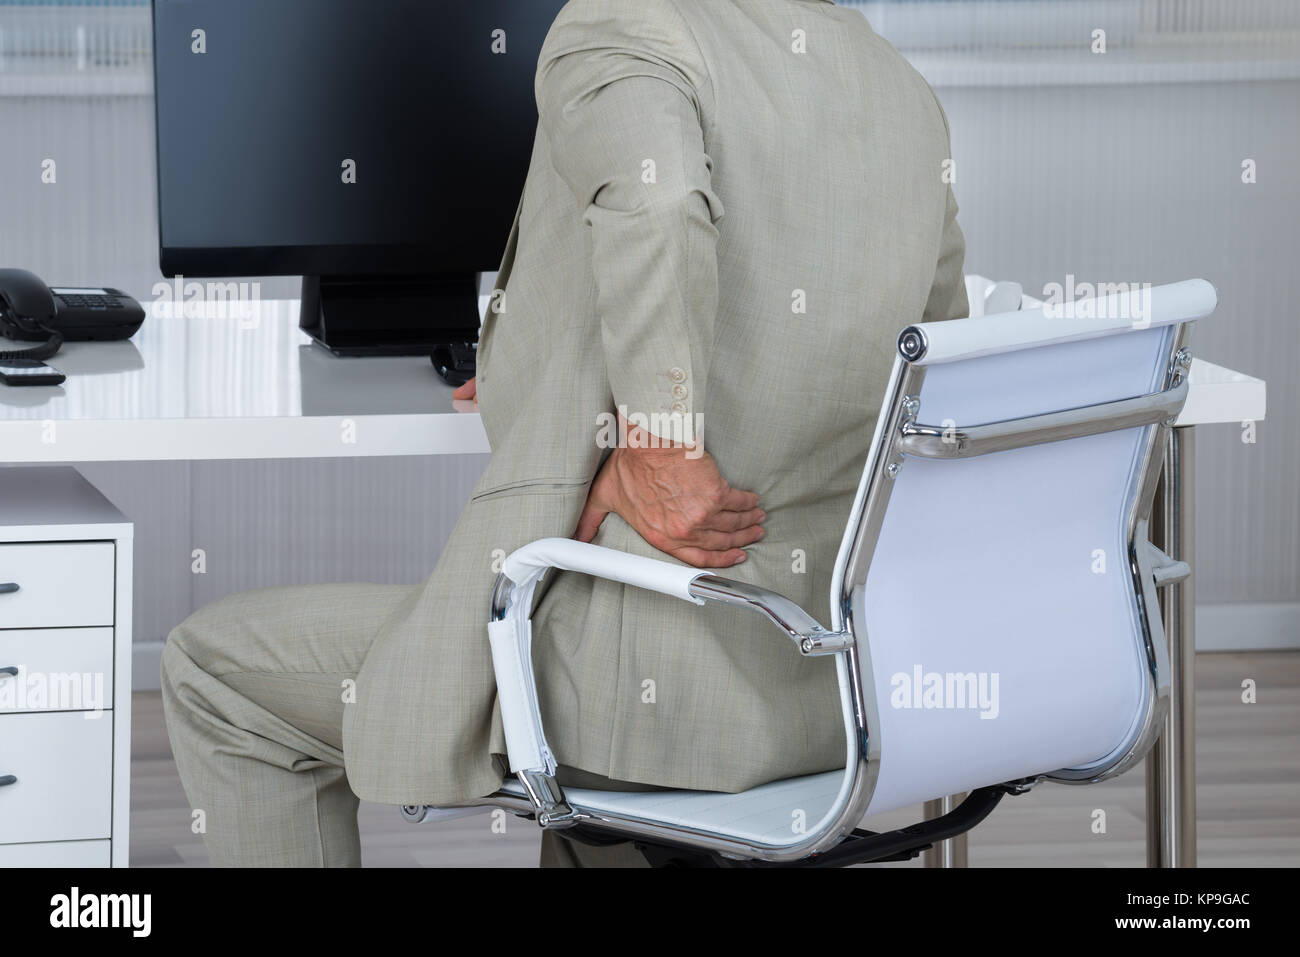 Businessman Suffering From Backache While Sitting On Chair - Stock Image